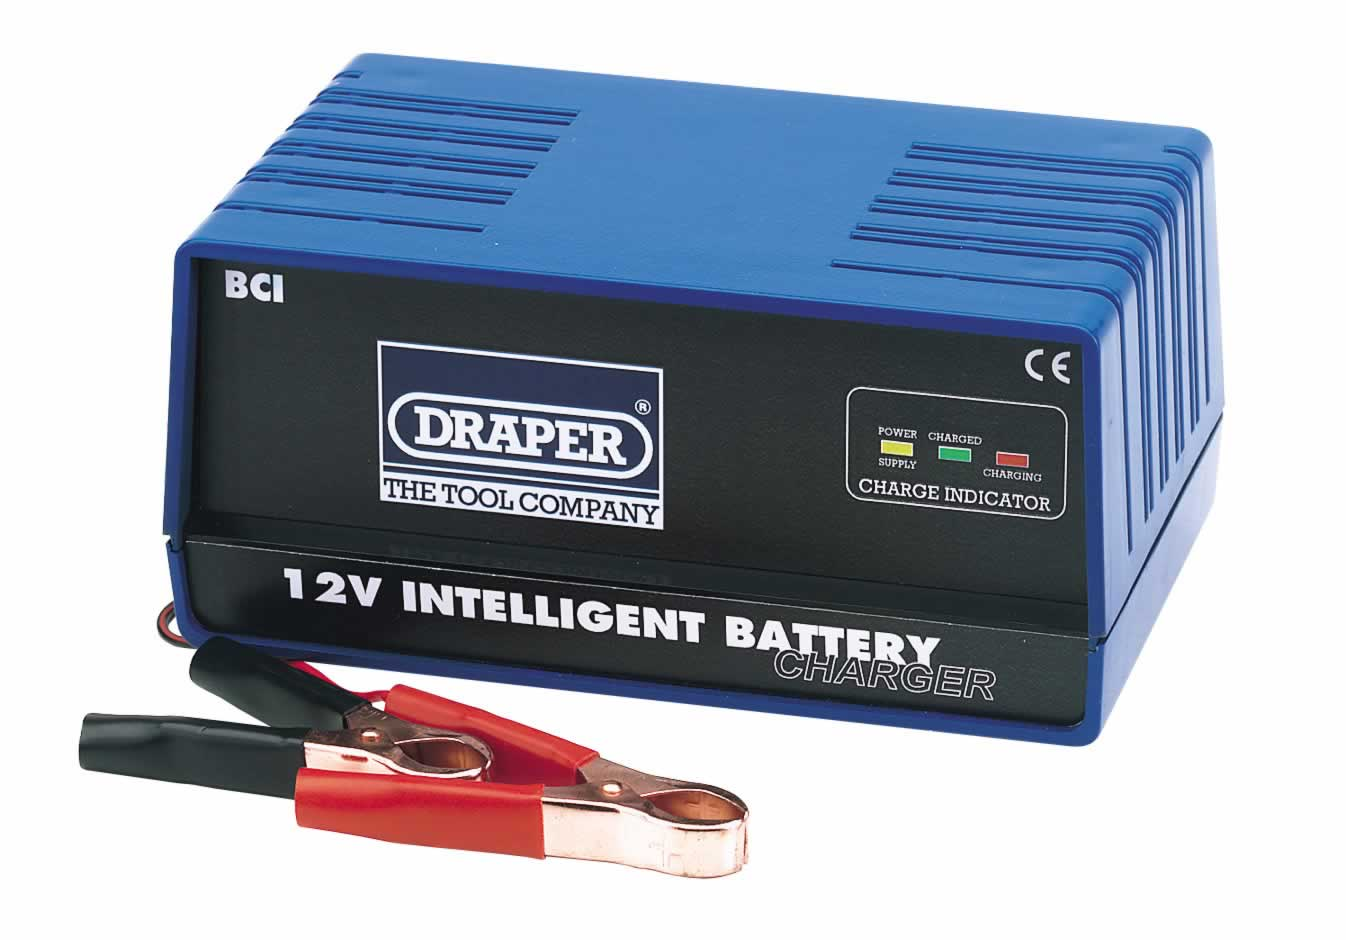 12V INTELLIGENT BATTERY CHARGER - 6A